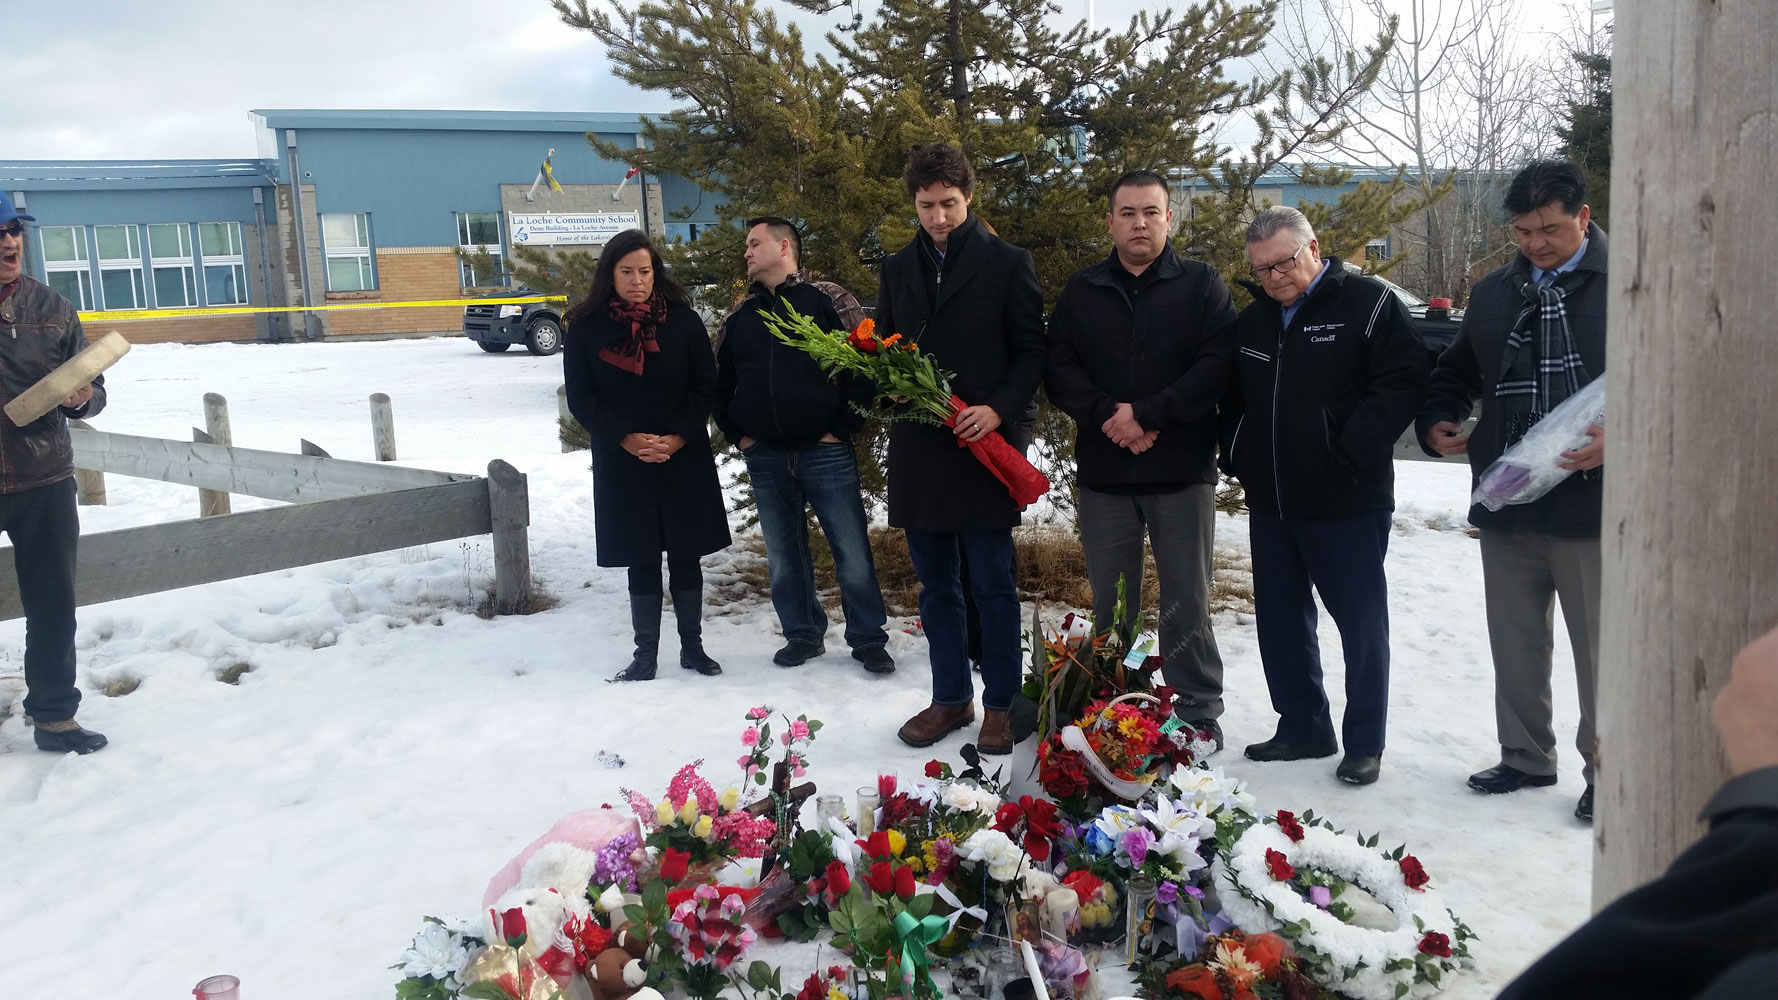 Prime Minister Justin Trudeau visited La Loche about one week after the shooting.